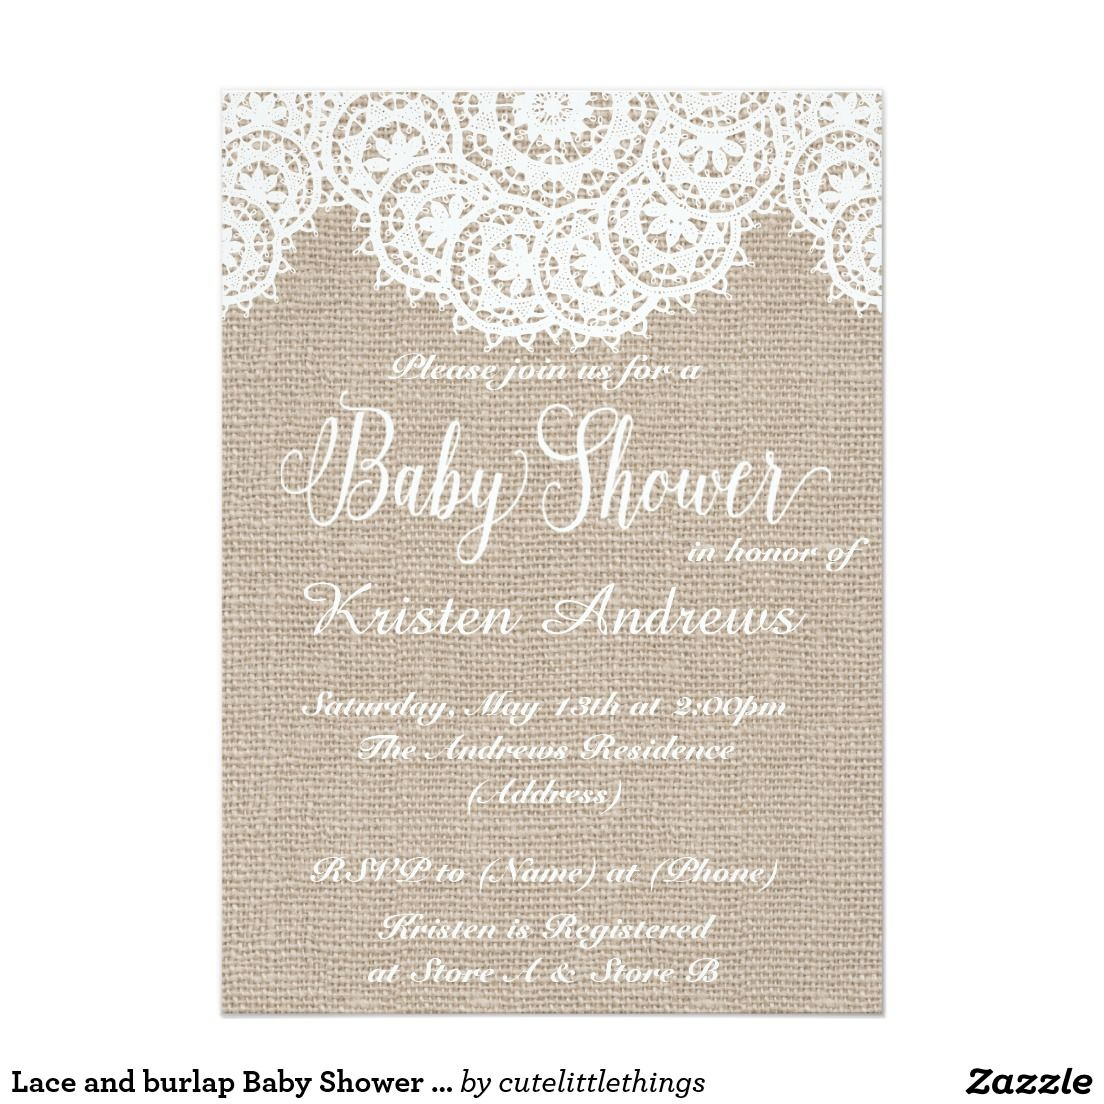 I LOVE these white on white Lace and burlap Baby Shower Invitations ...